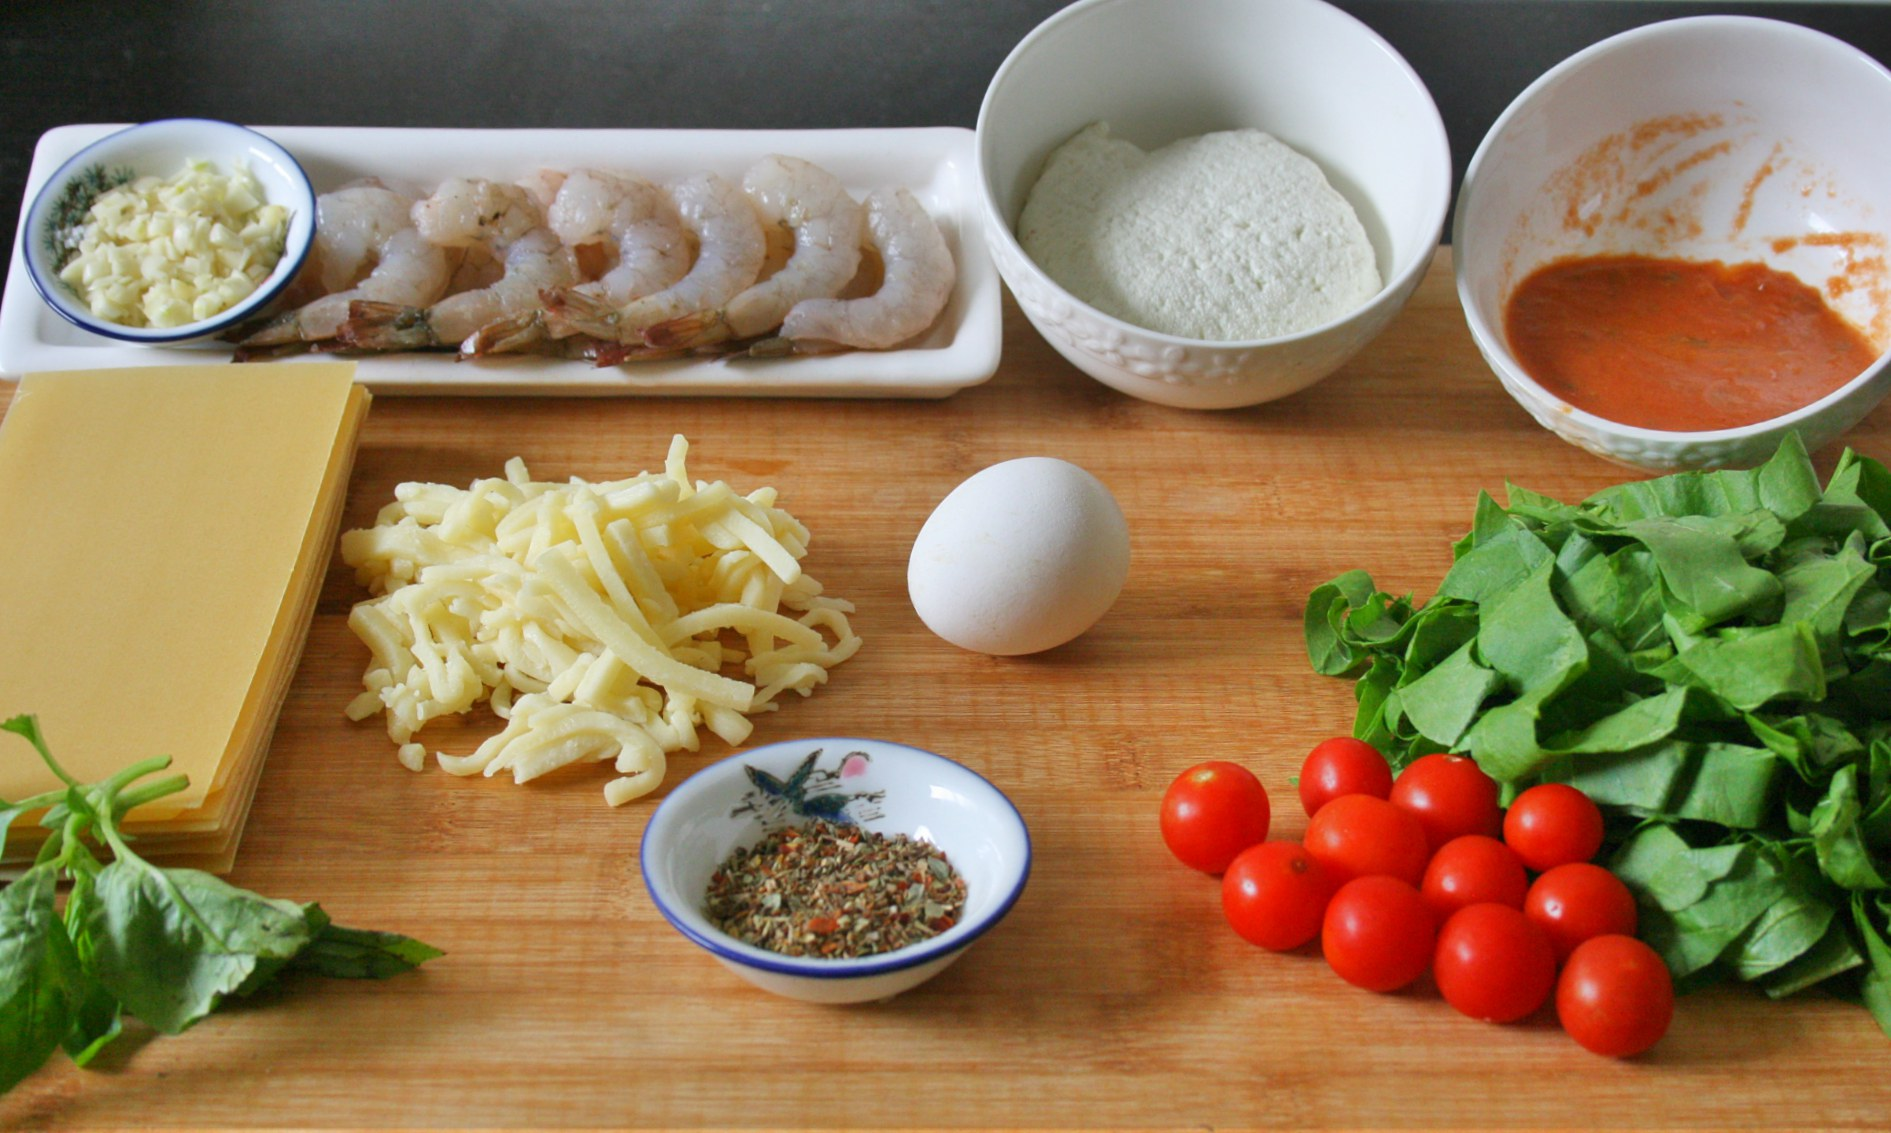 Ingredients Prawn Lasagna Roll ups